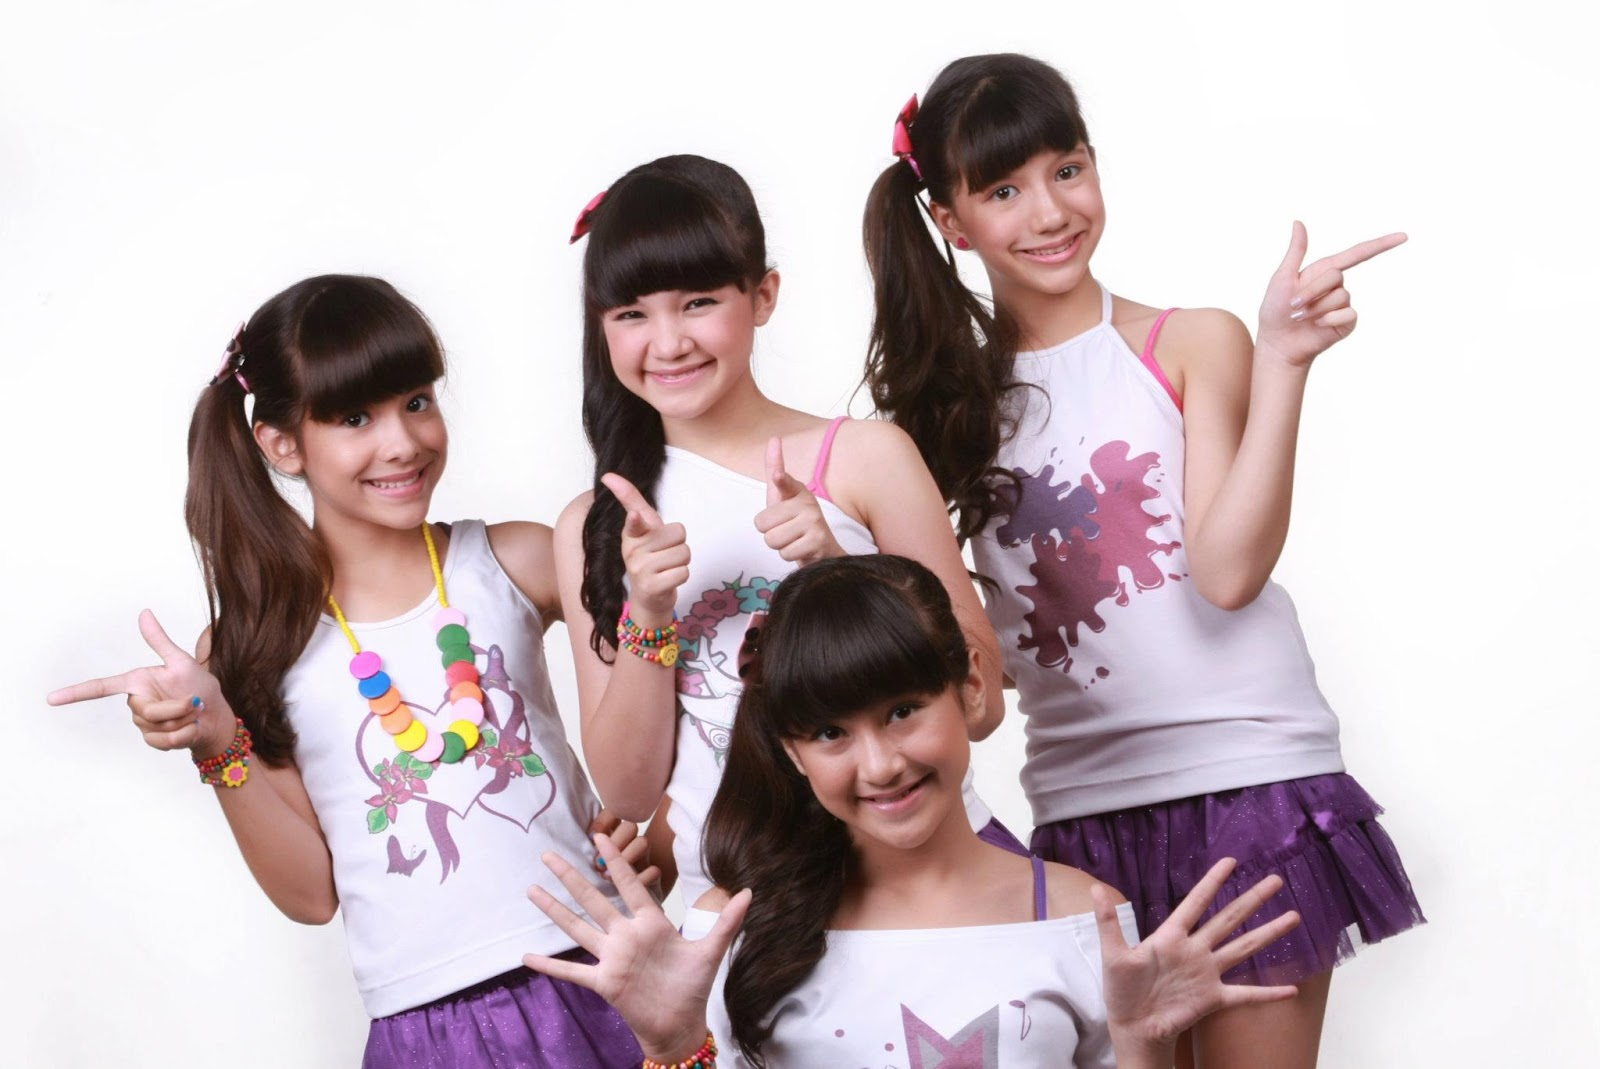 bella graceva amanda putri bella bassara sharon sahertian sharon